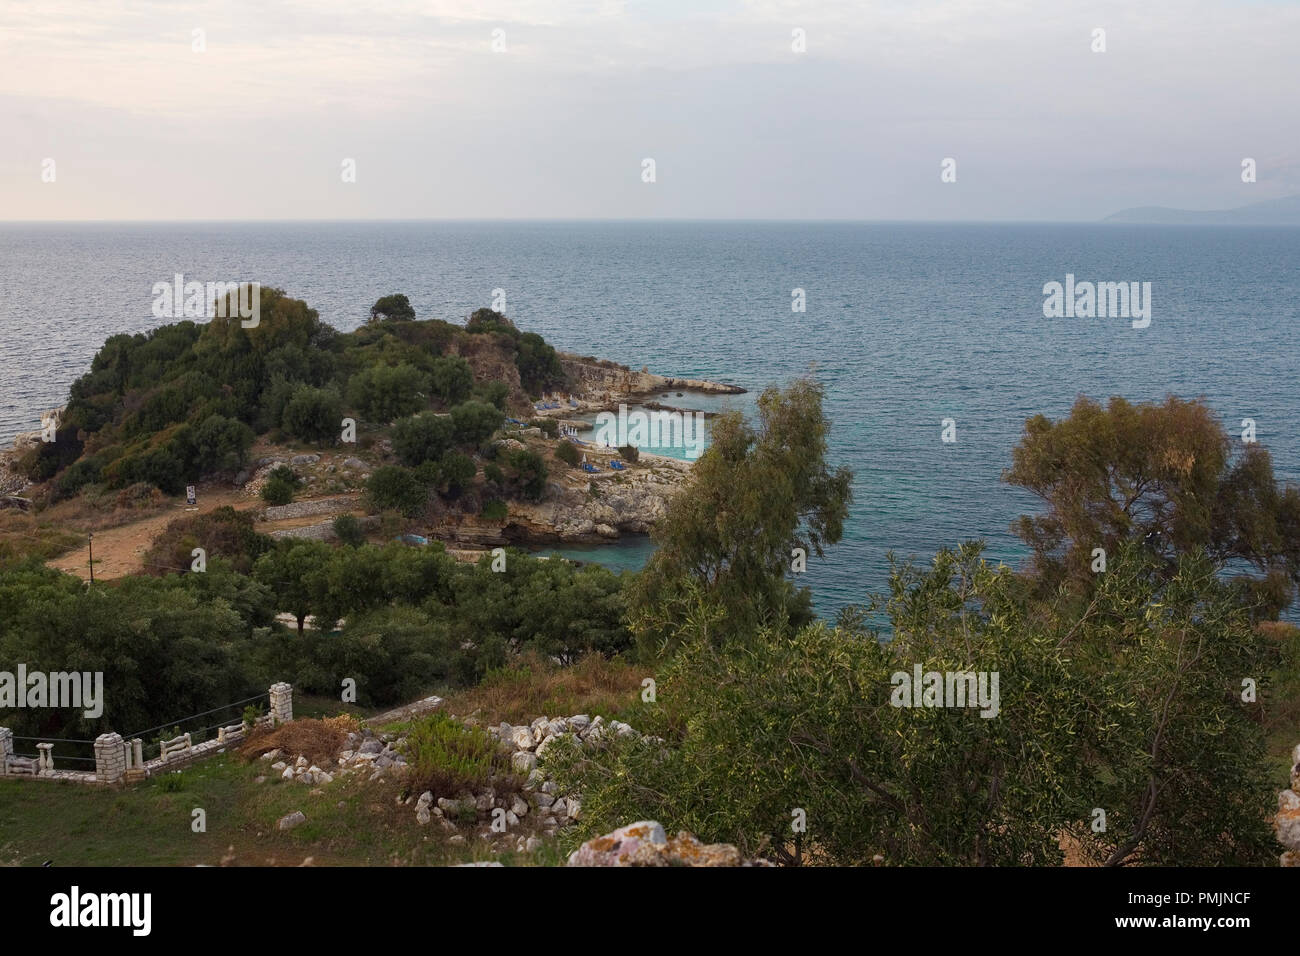 Bataria Beach and Peninsula from the Castle, Kassiopi, Corfu, Greece Stock Photo